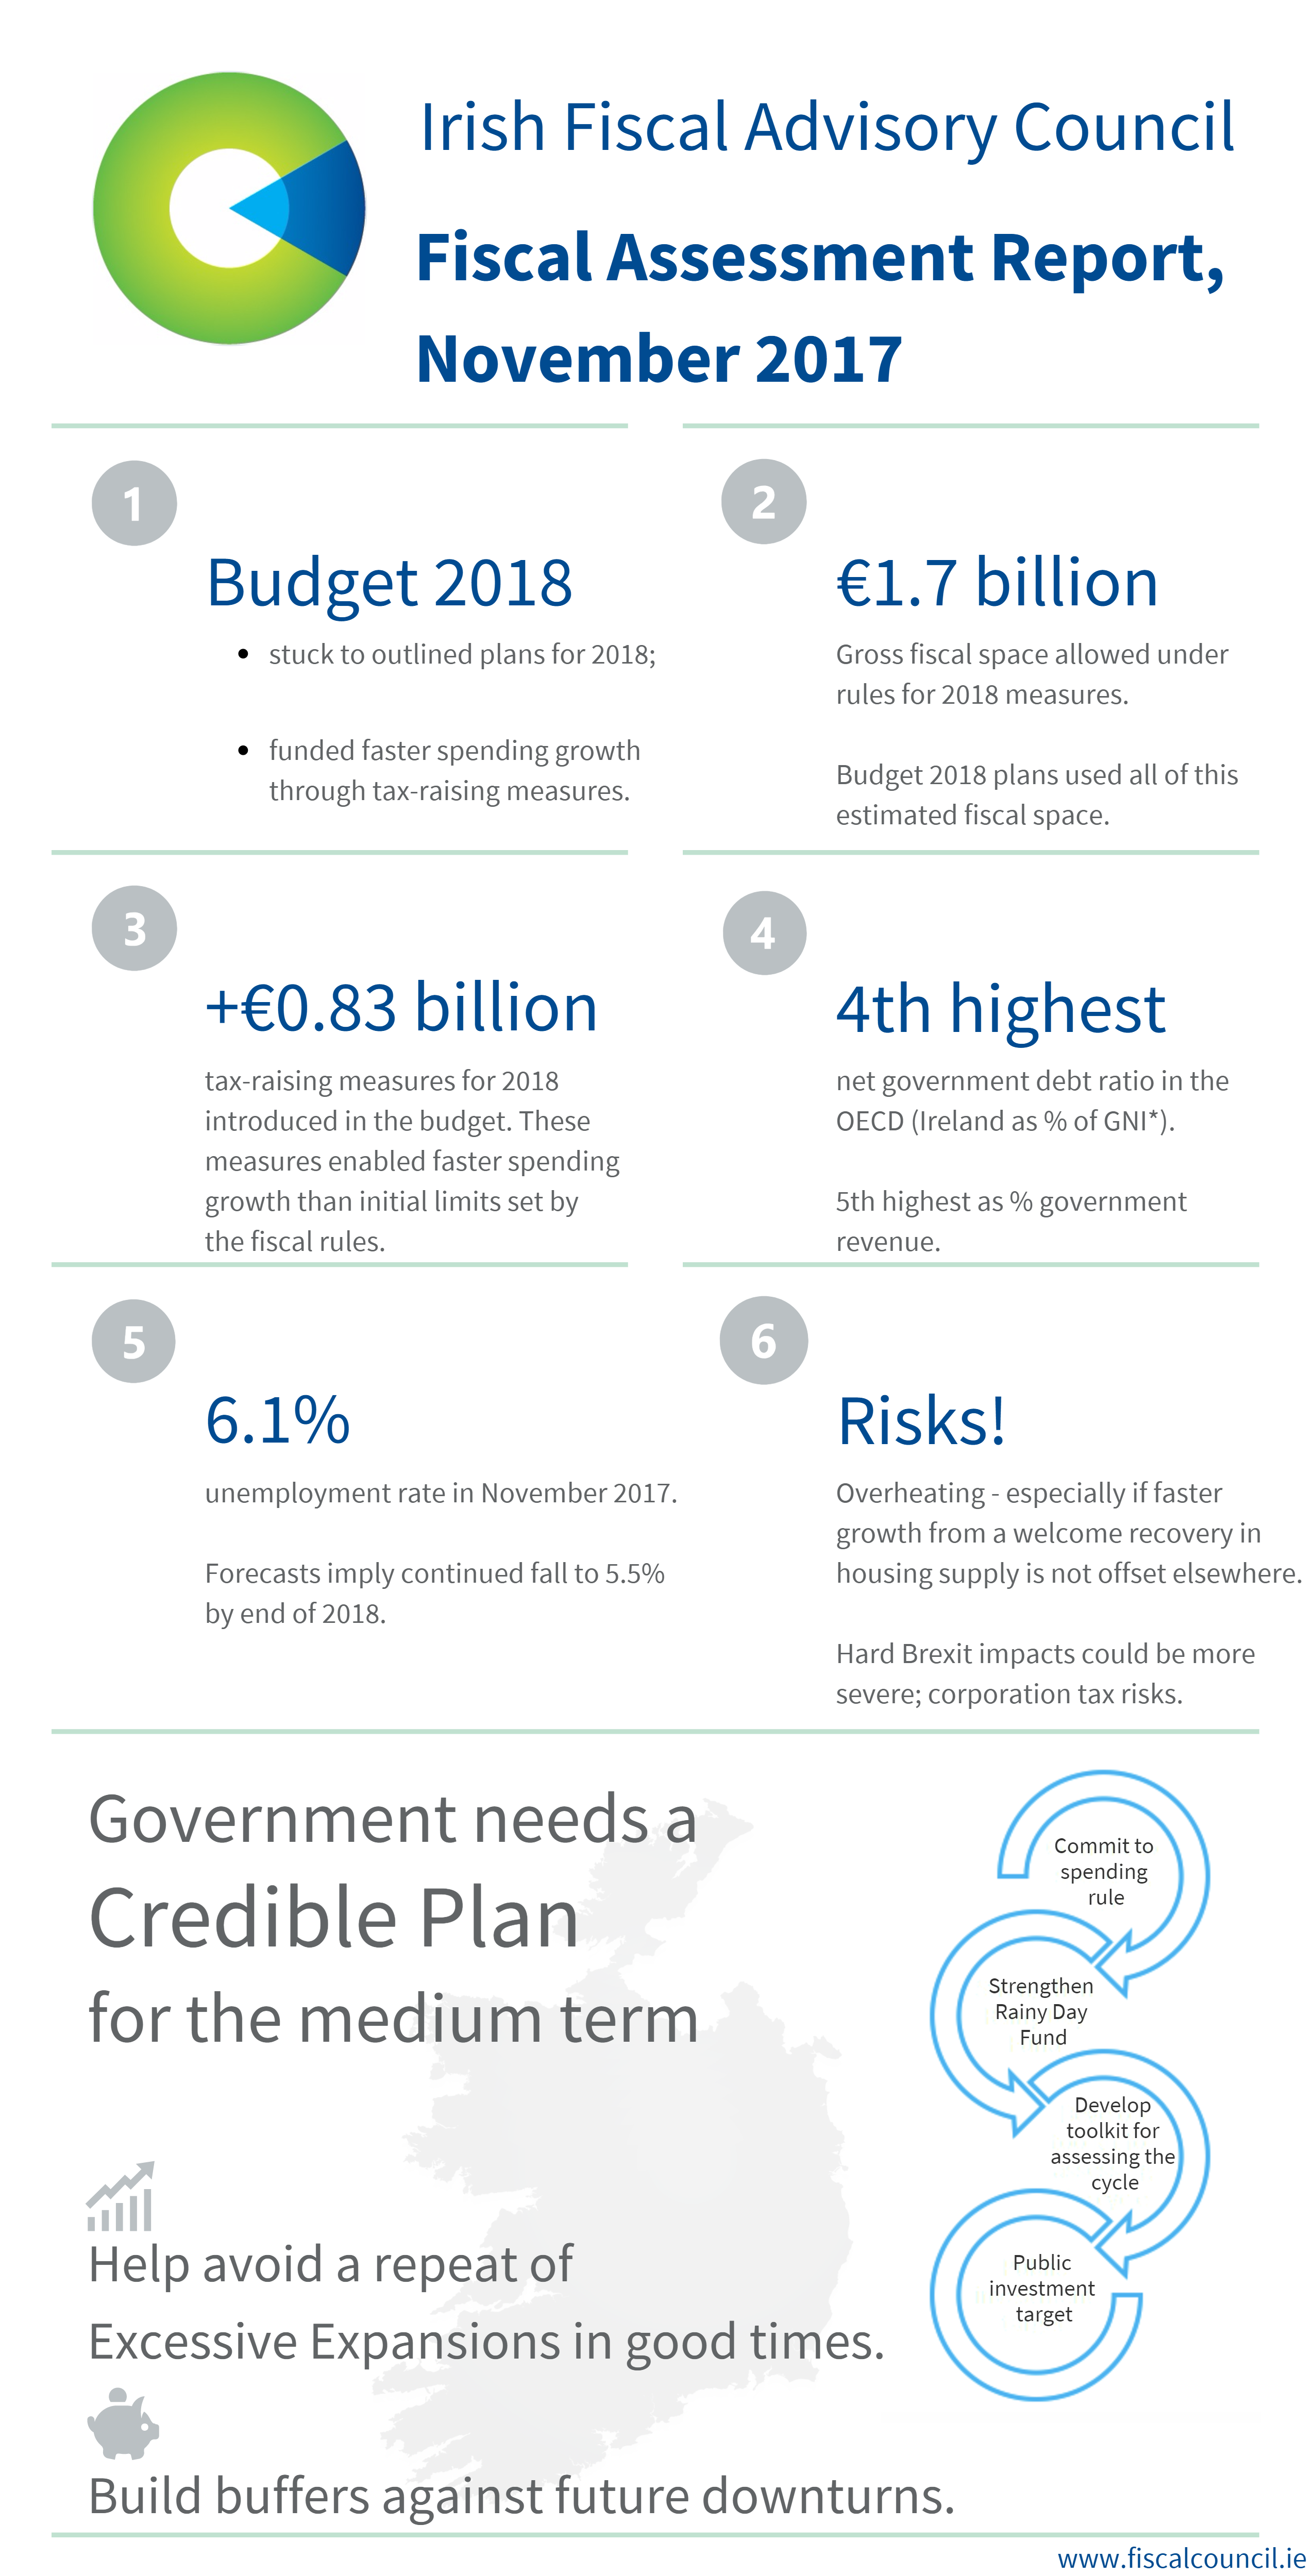 Infographic about Fiscal Assessment Report, November 2017. All the information from the infographic is available below immediately this image.